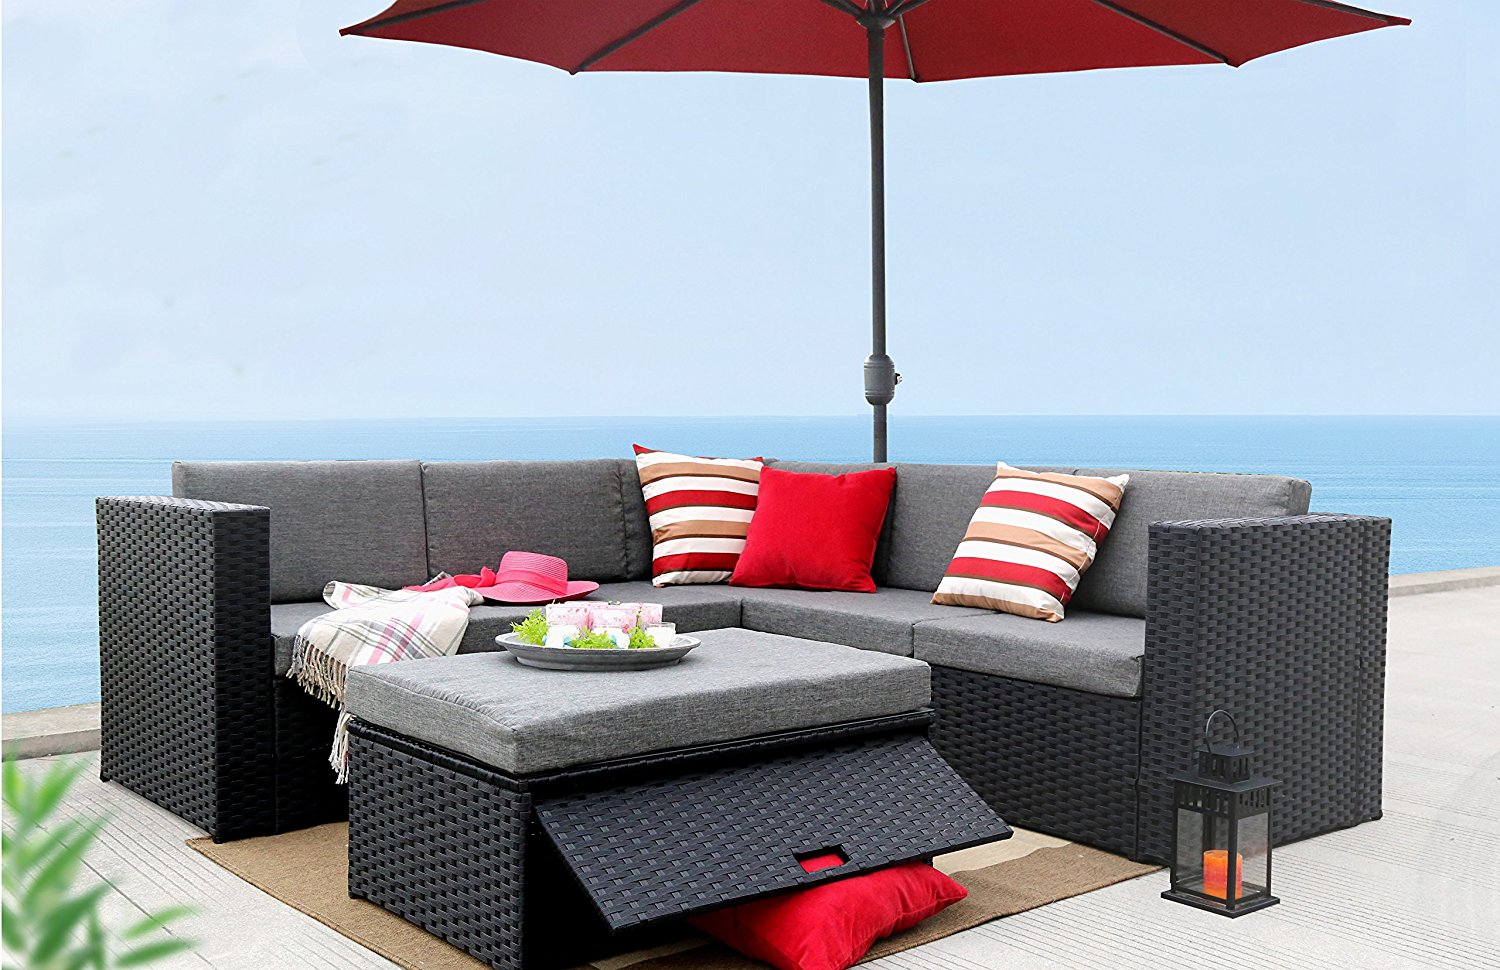 Best Wicker Patio Furniture Sets Under $1000. Resin Wicker Patio Furniture | OutsideModern & Best Wicker Patio Furniture Sets Under $1000. Resin Wicker Patio ...